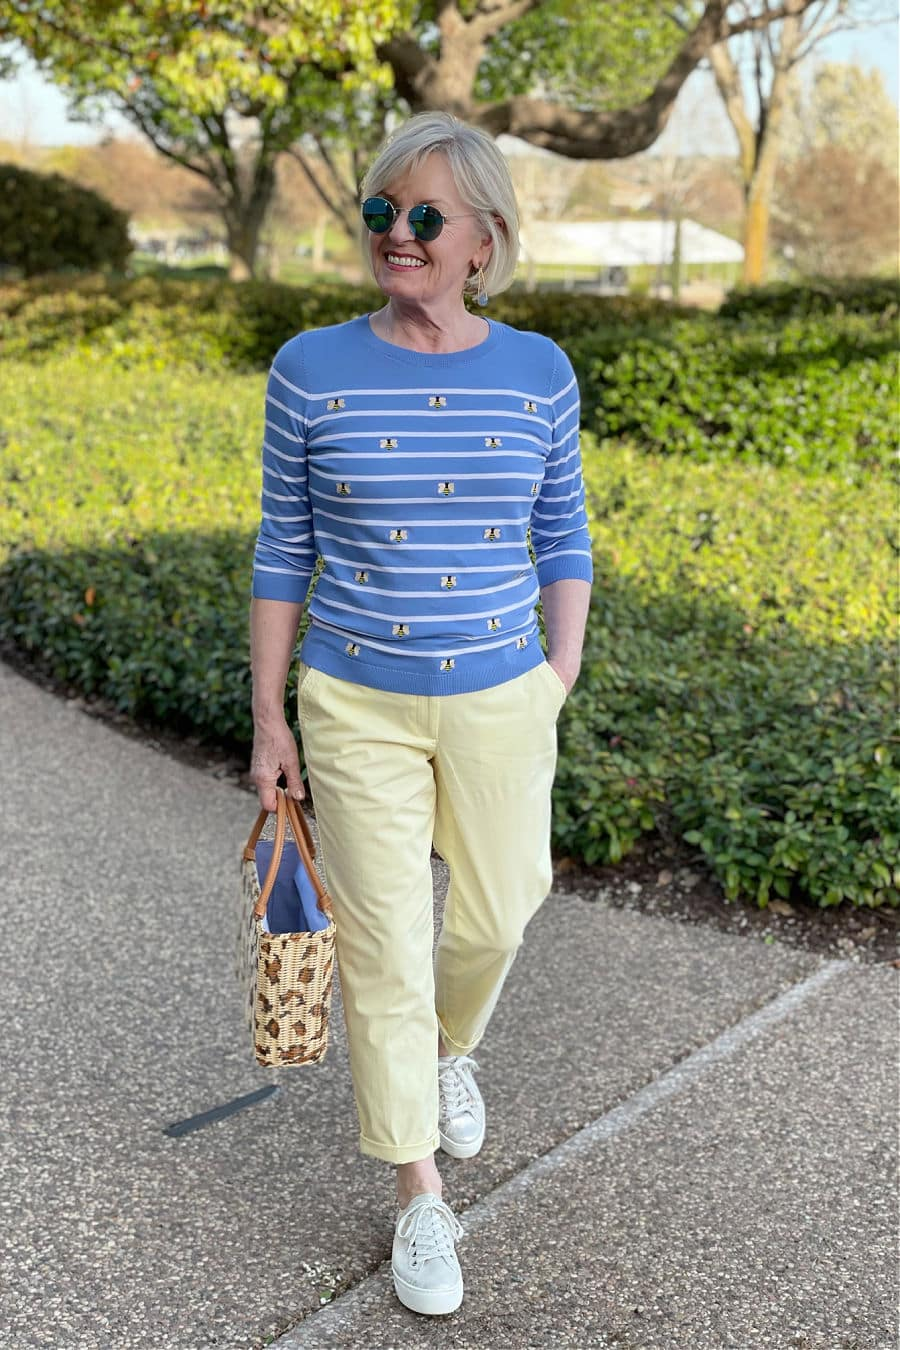 woman walking in park wearing spring outfit of blue striped sweater and yellow pants